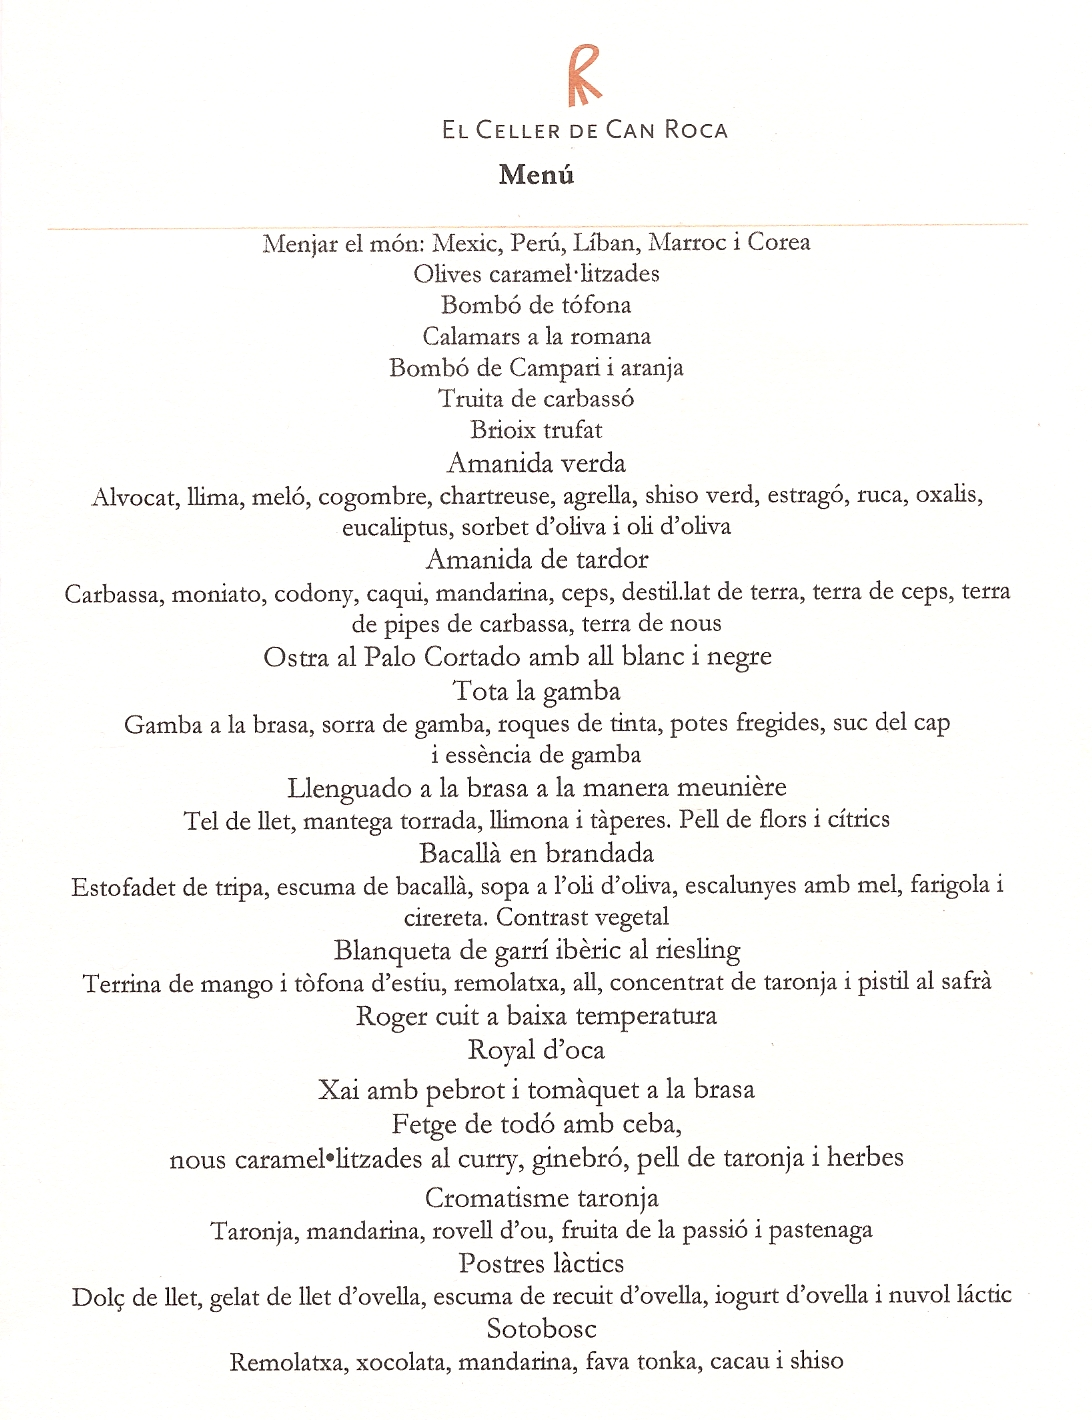 El Celler de Can Roca can roca menu